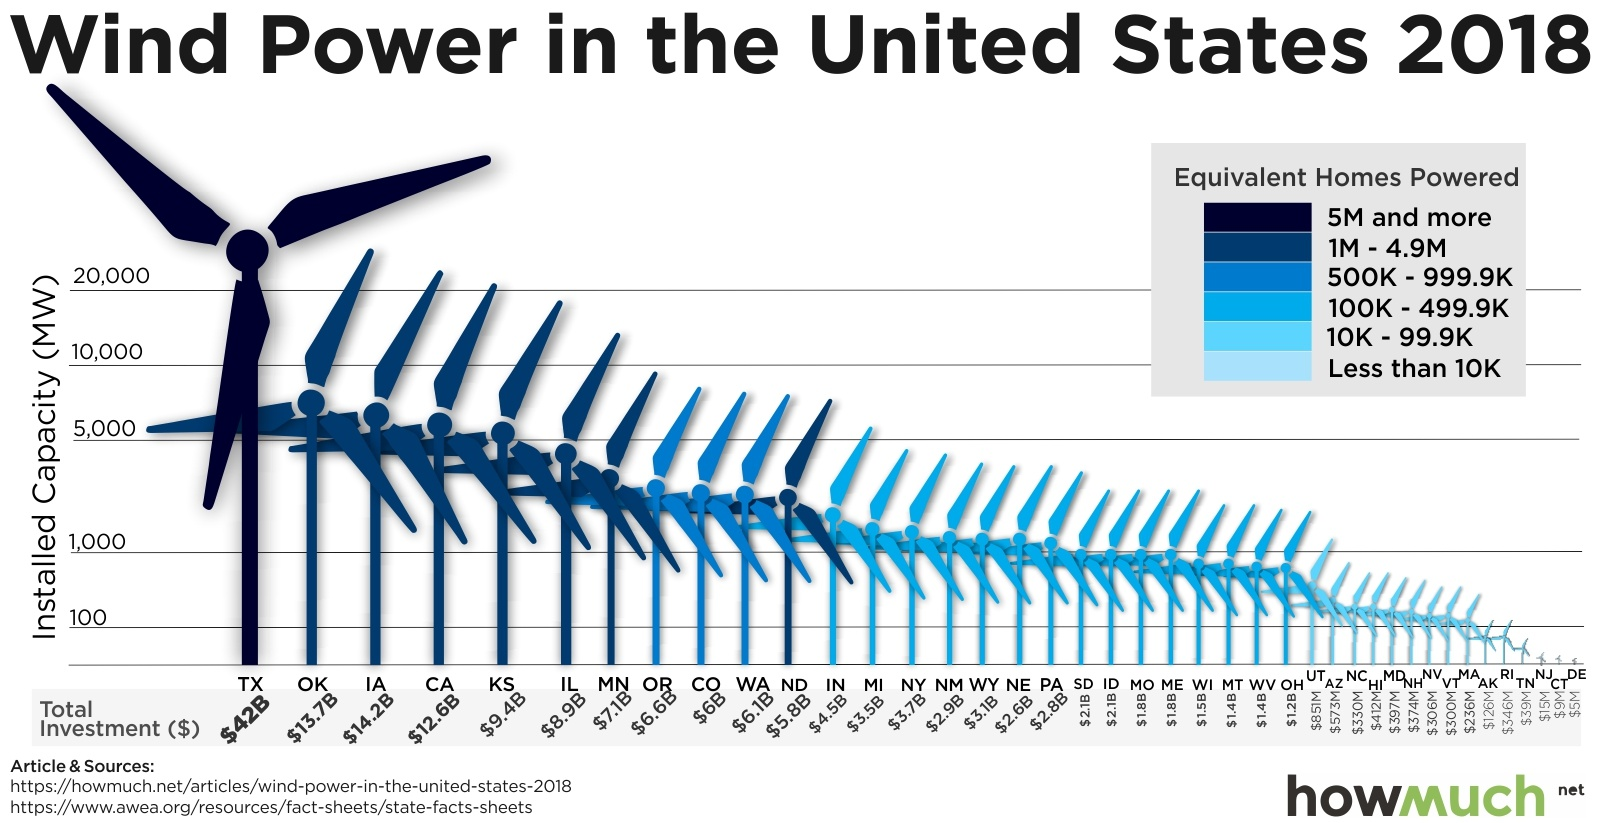 wind-power-in-the-united-states-2018-2cf9.jpg